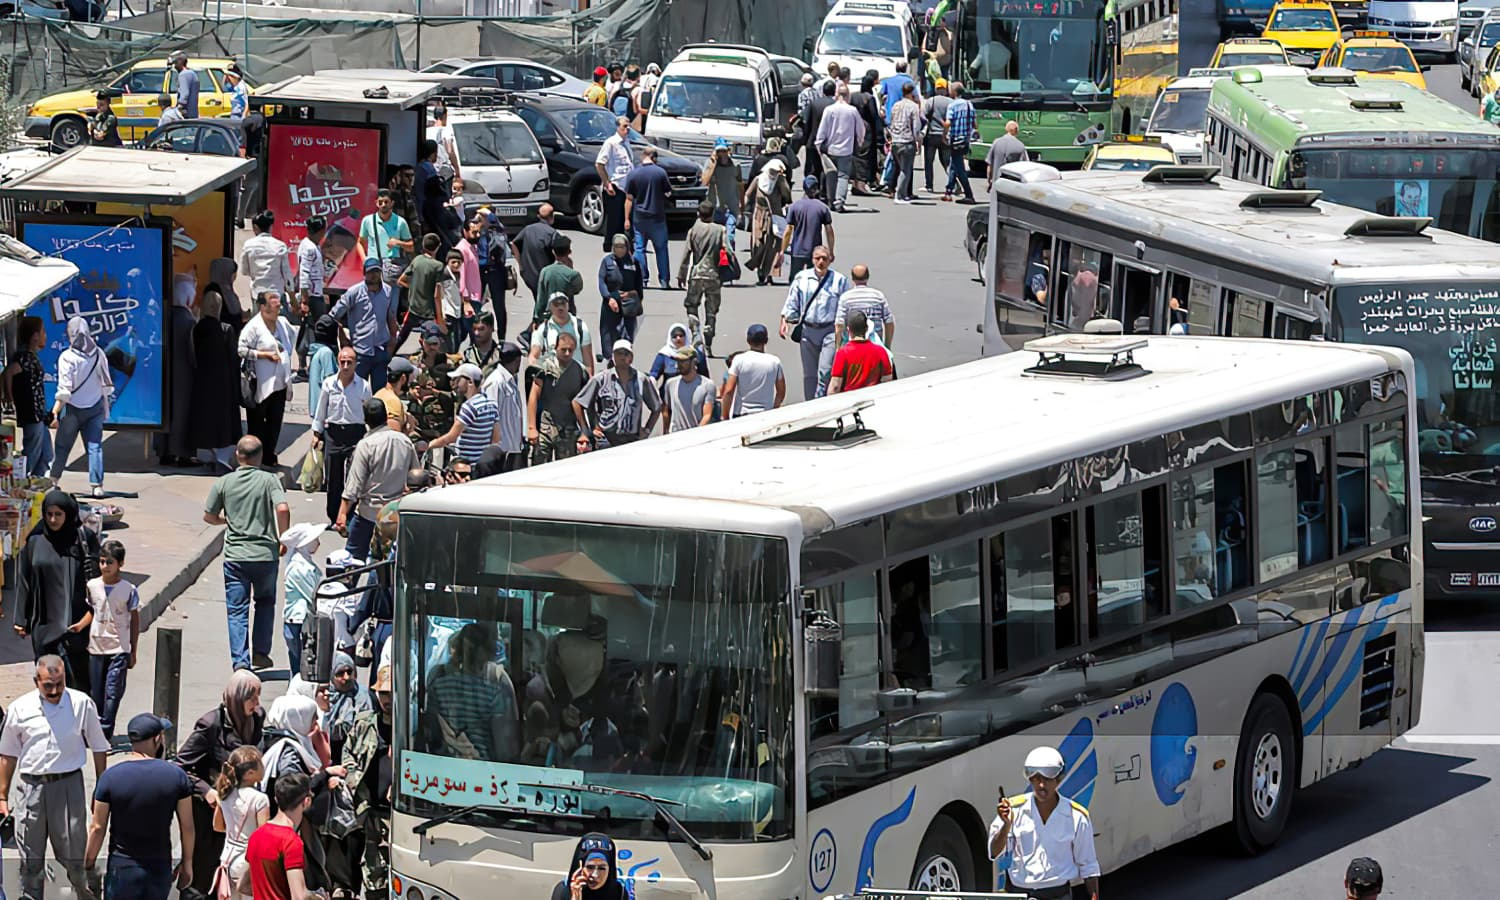 A transportation crisis in the aftermath of the increased fuel prices in the capital city Damascus (AFP).